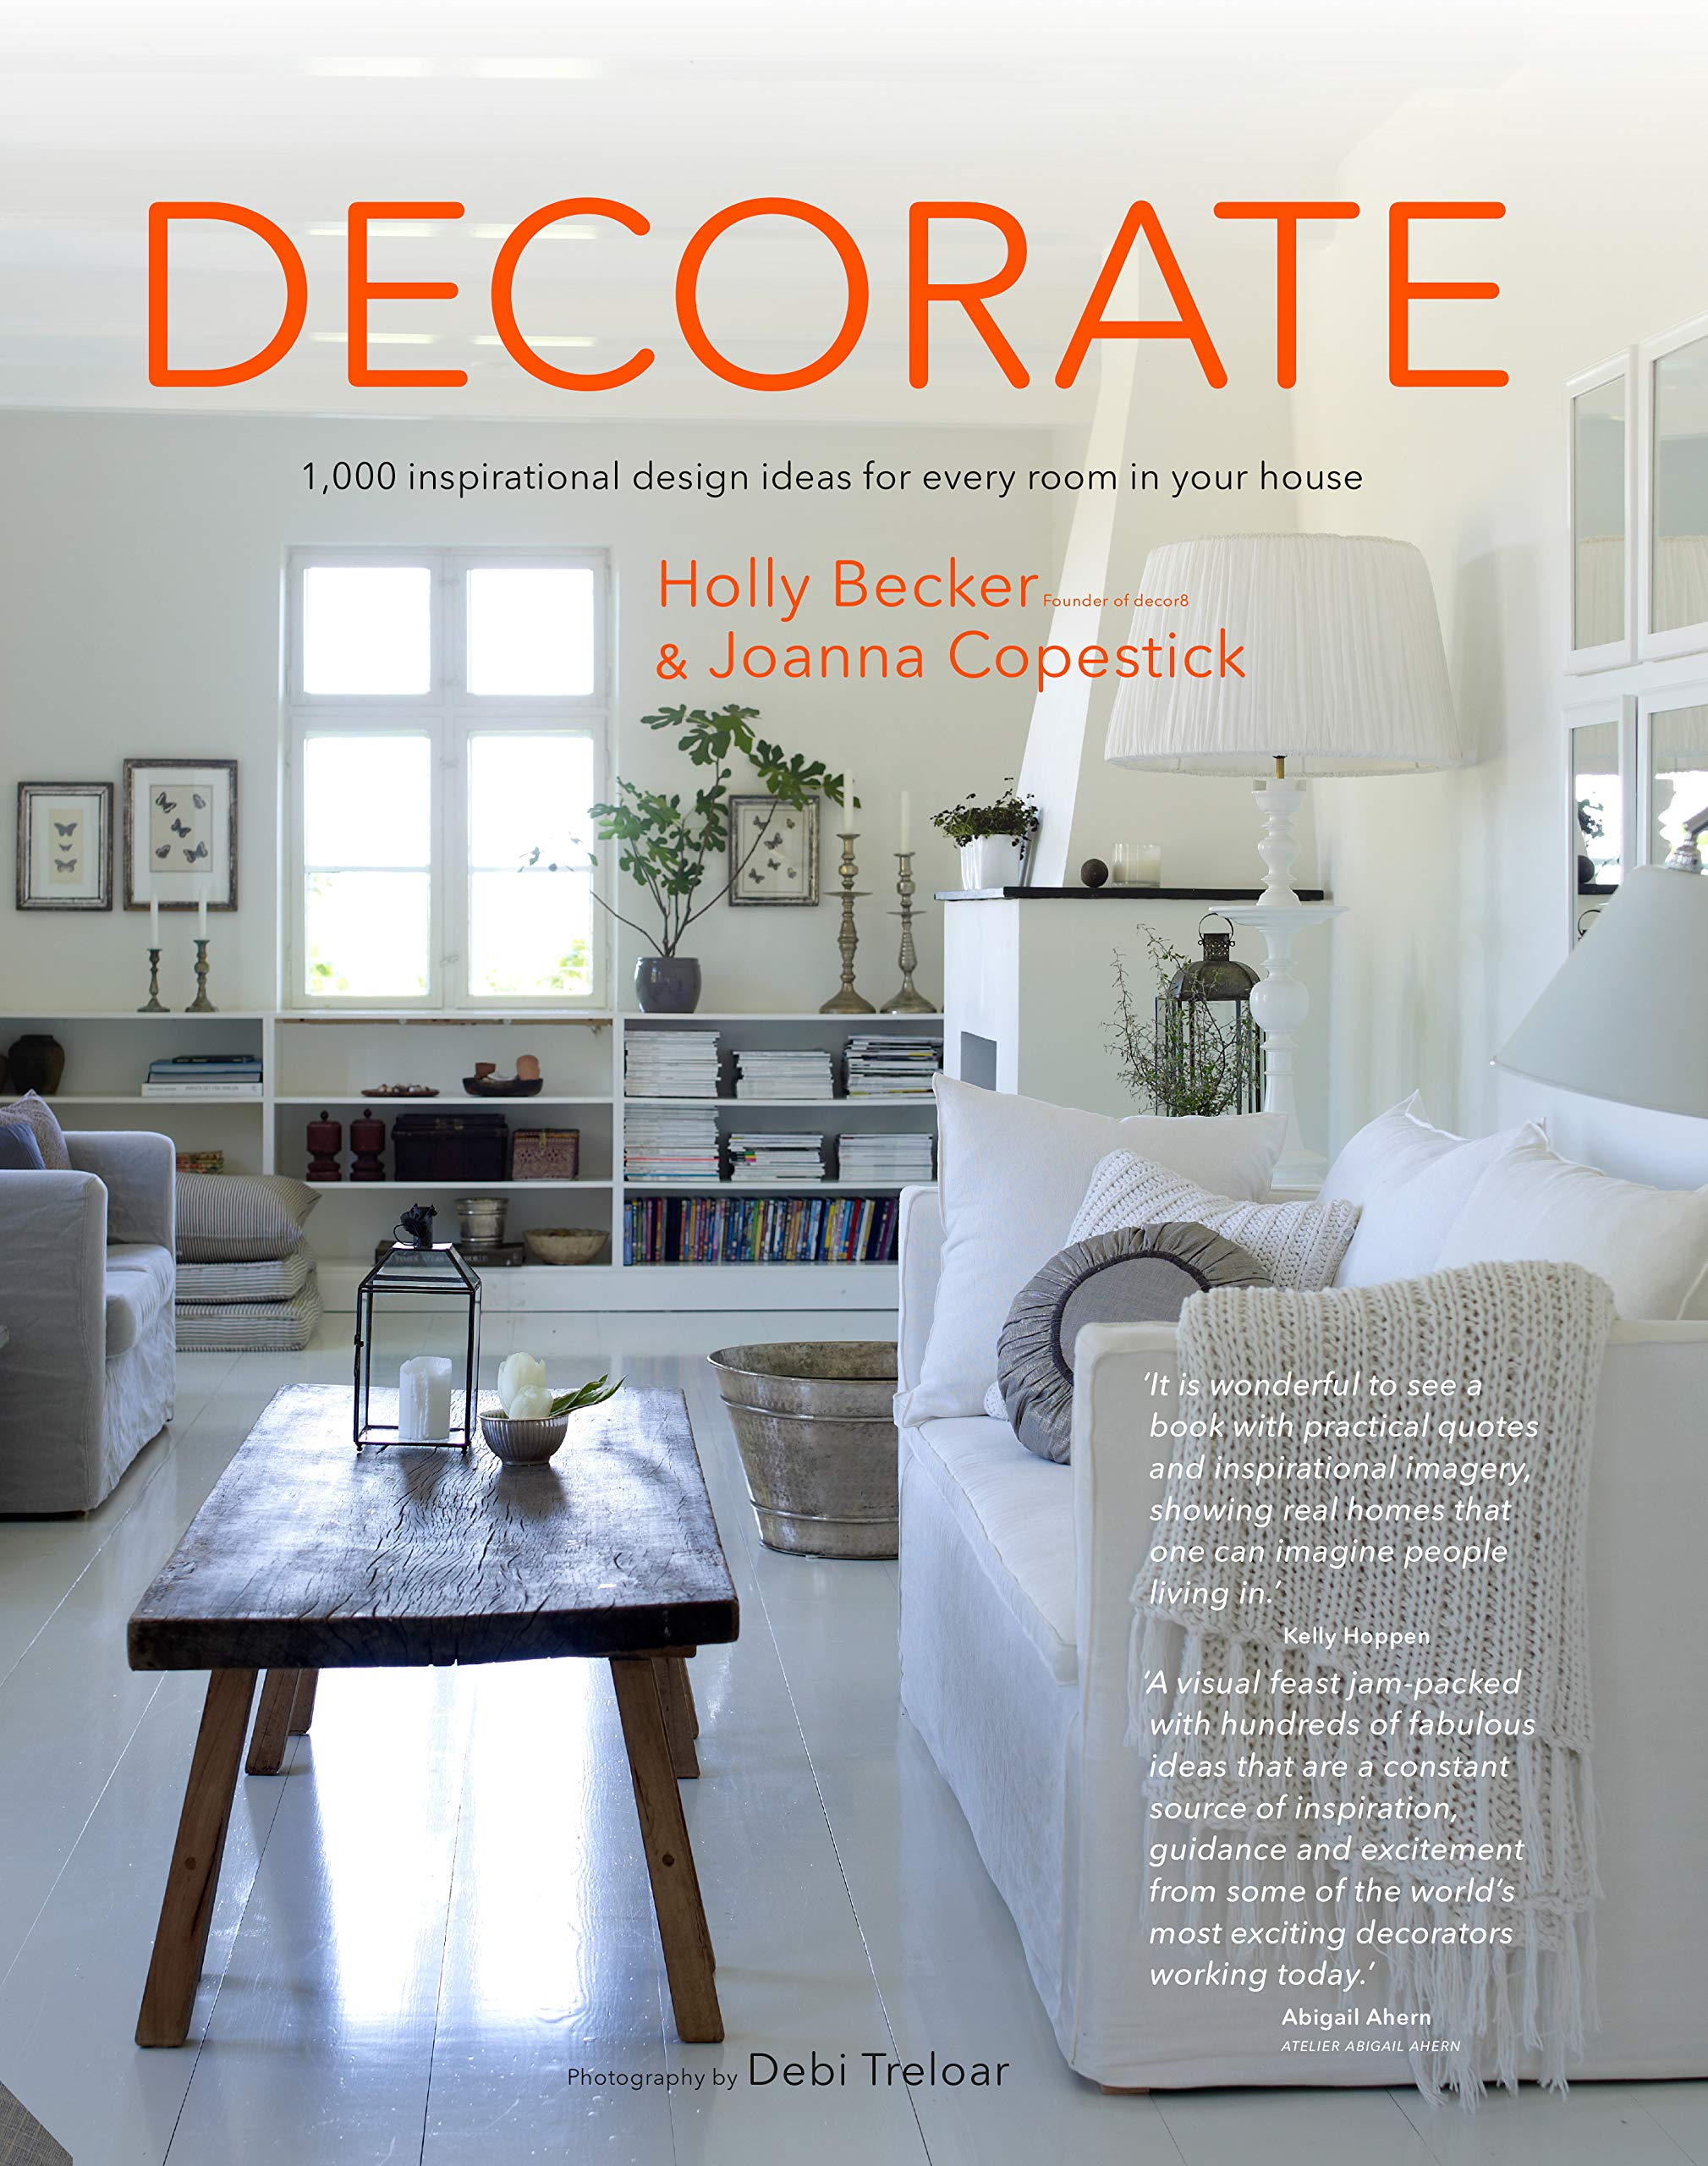 the source inspirational ideas for the home